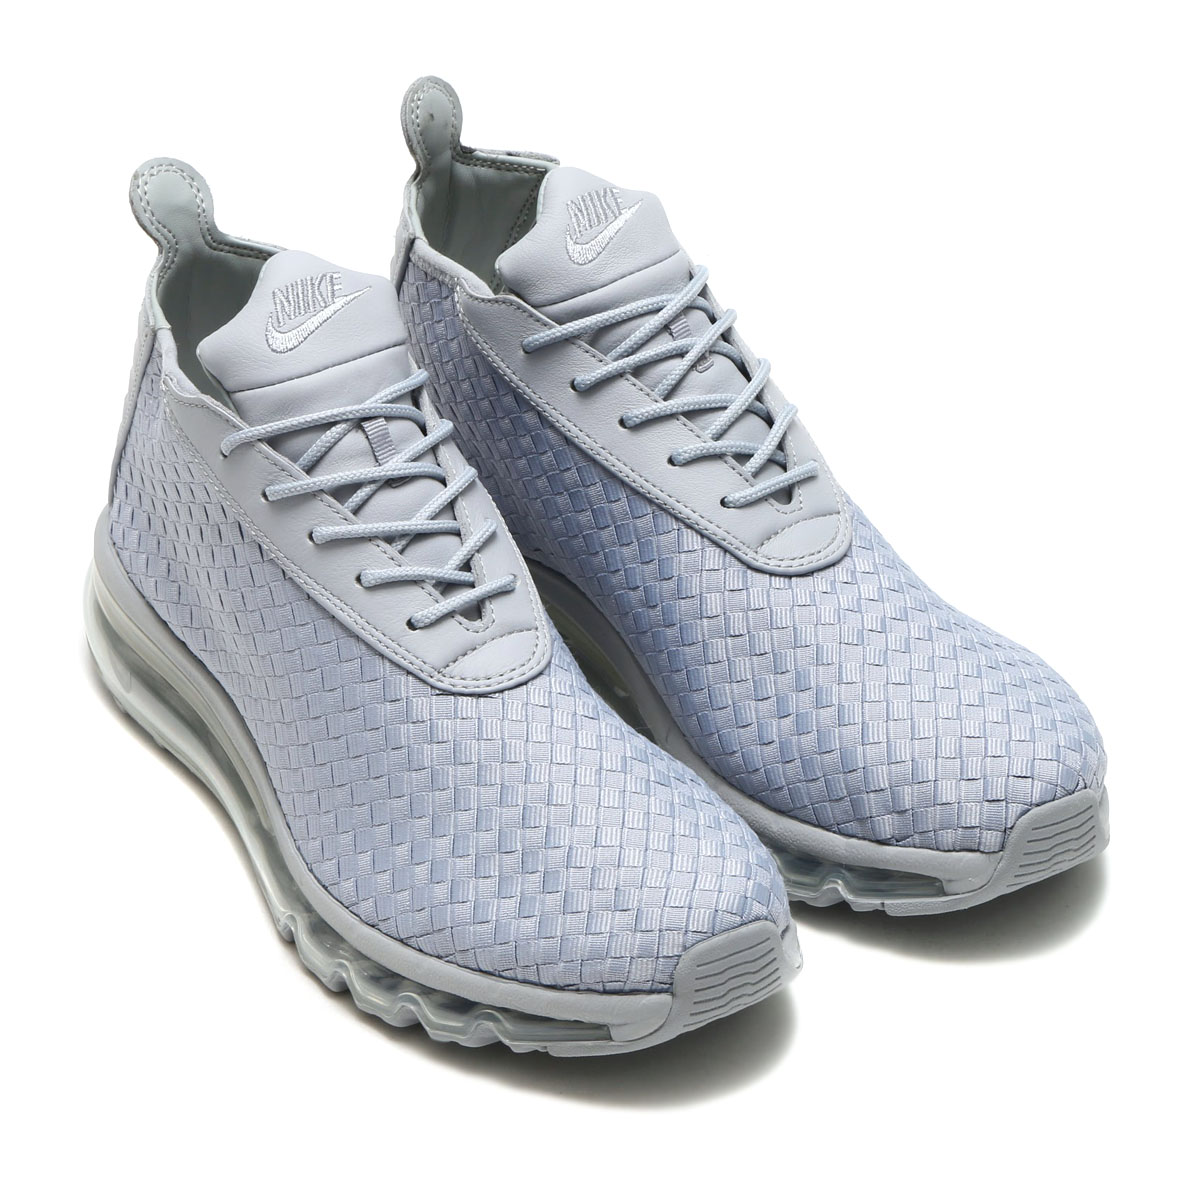 big sale eddbb 6177d The appearance of the HYBRID model who matched 360 AIR MAX touring with  upper of AIR WOVEN BOOT. The nu modern AIR MAX-style that merged クッショニング of  ...